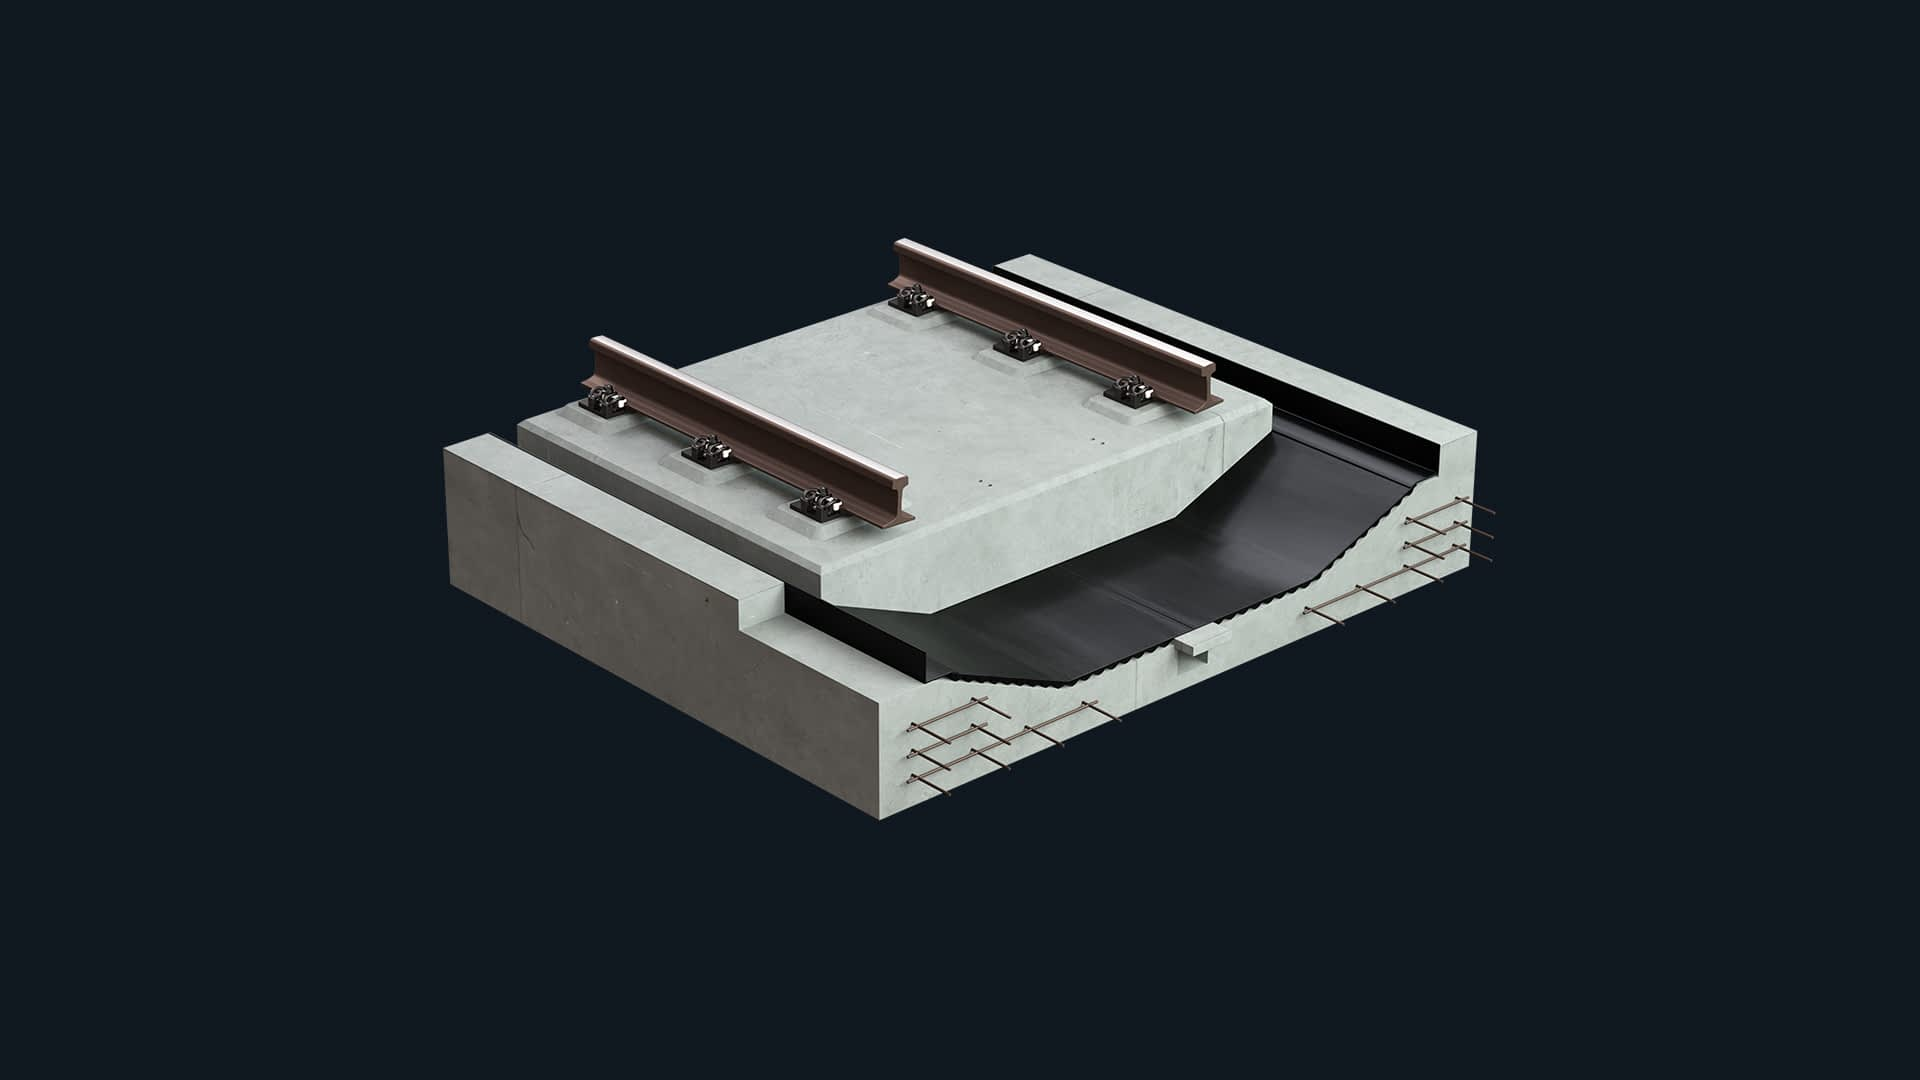 tiantie-group_products_track-mats_Slider02_1920x1080